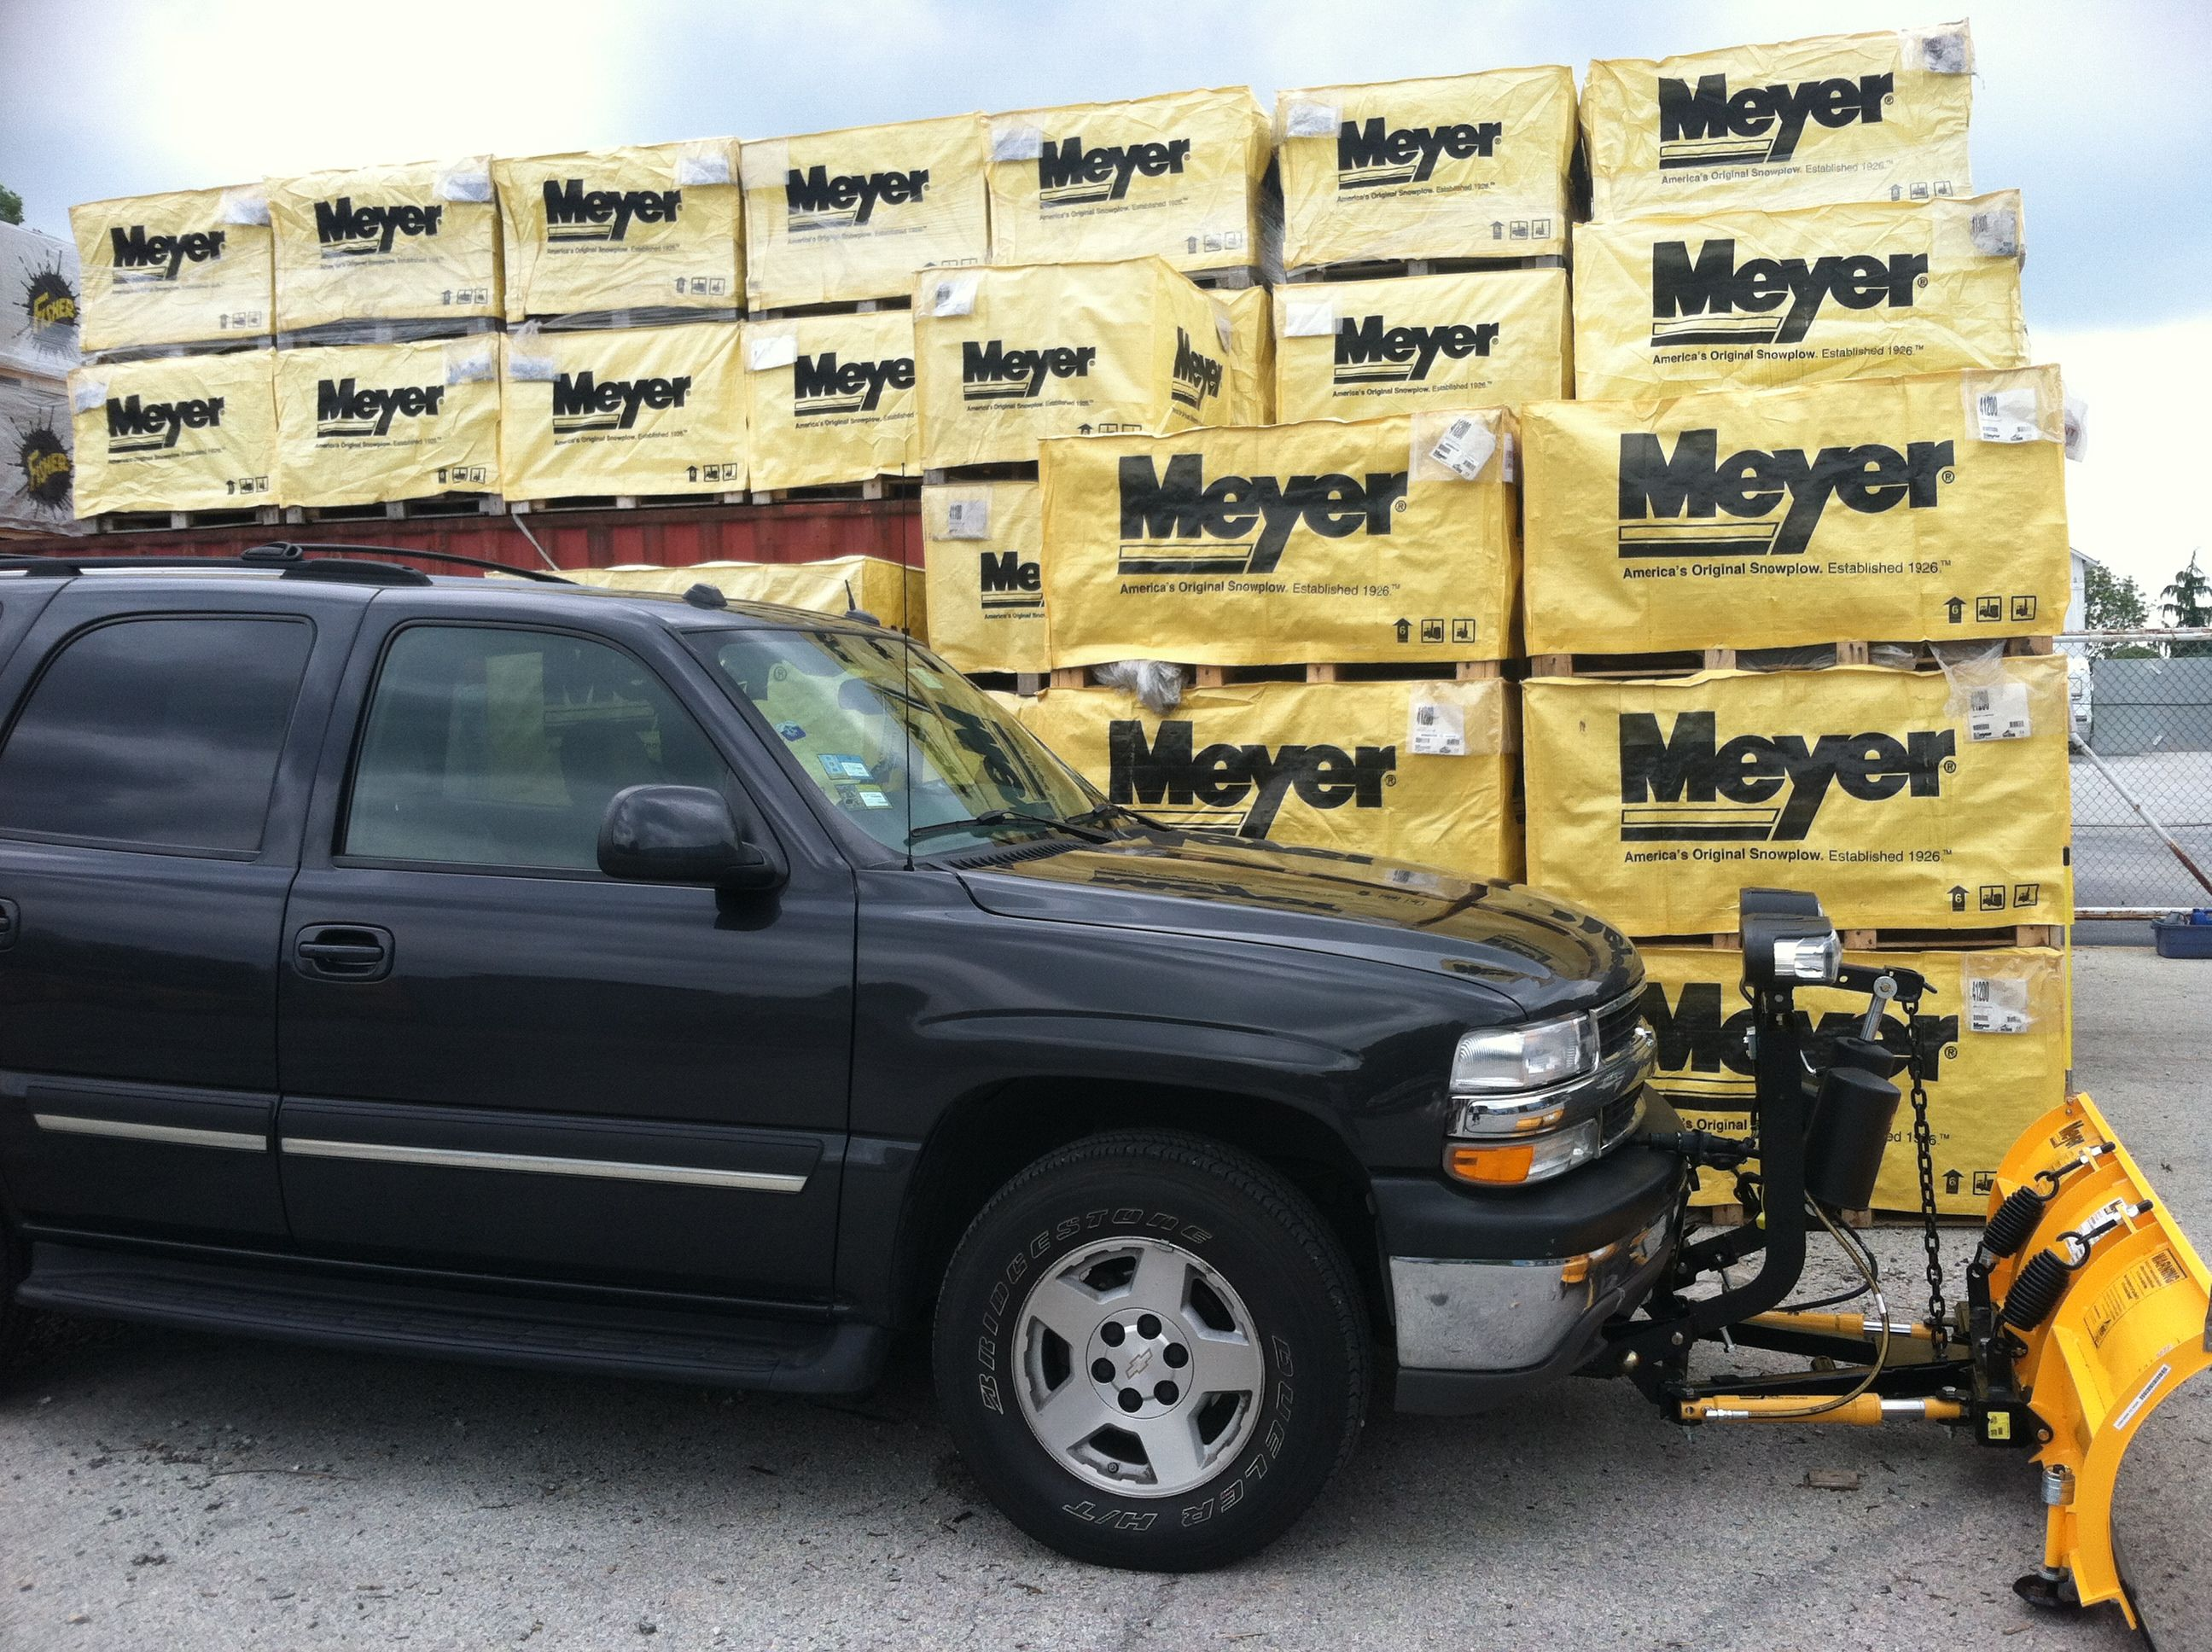 Meyer installed on Chevy Tahoe Chevy tahoe, Snow plow, Chevy